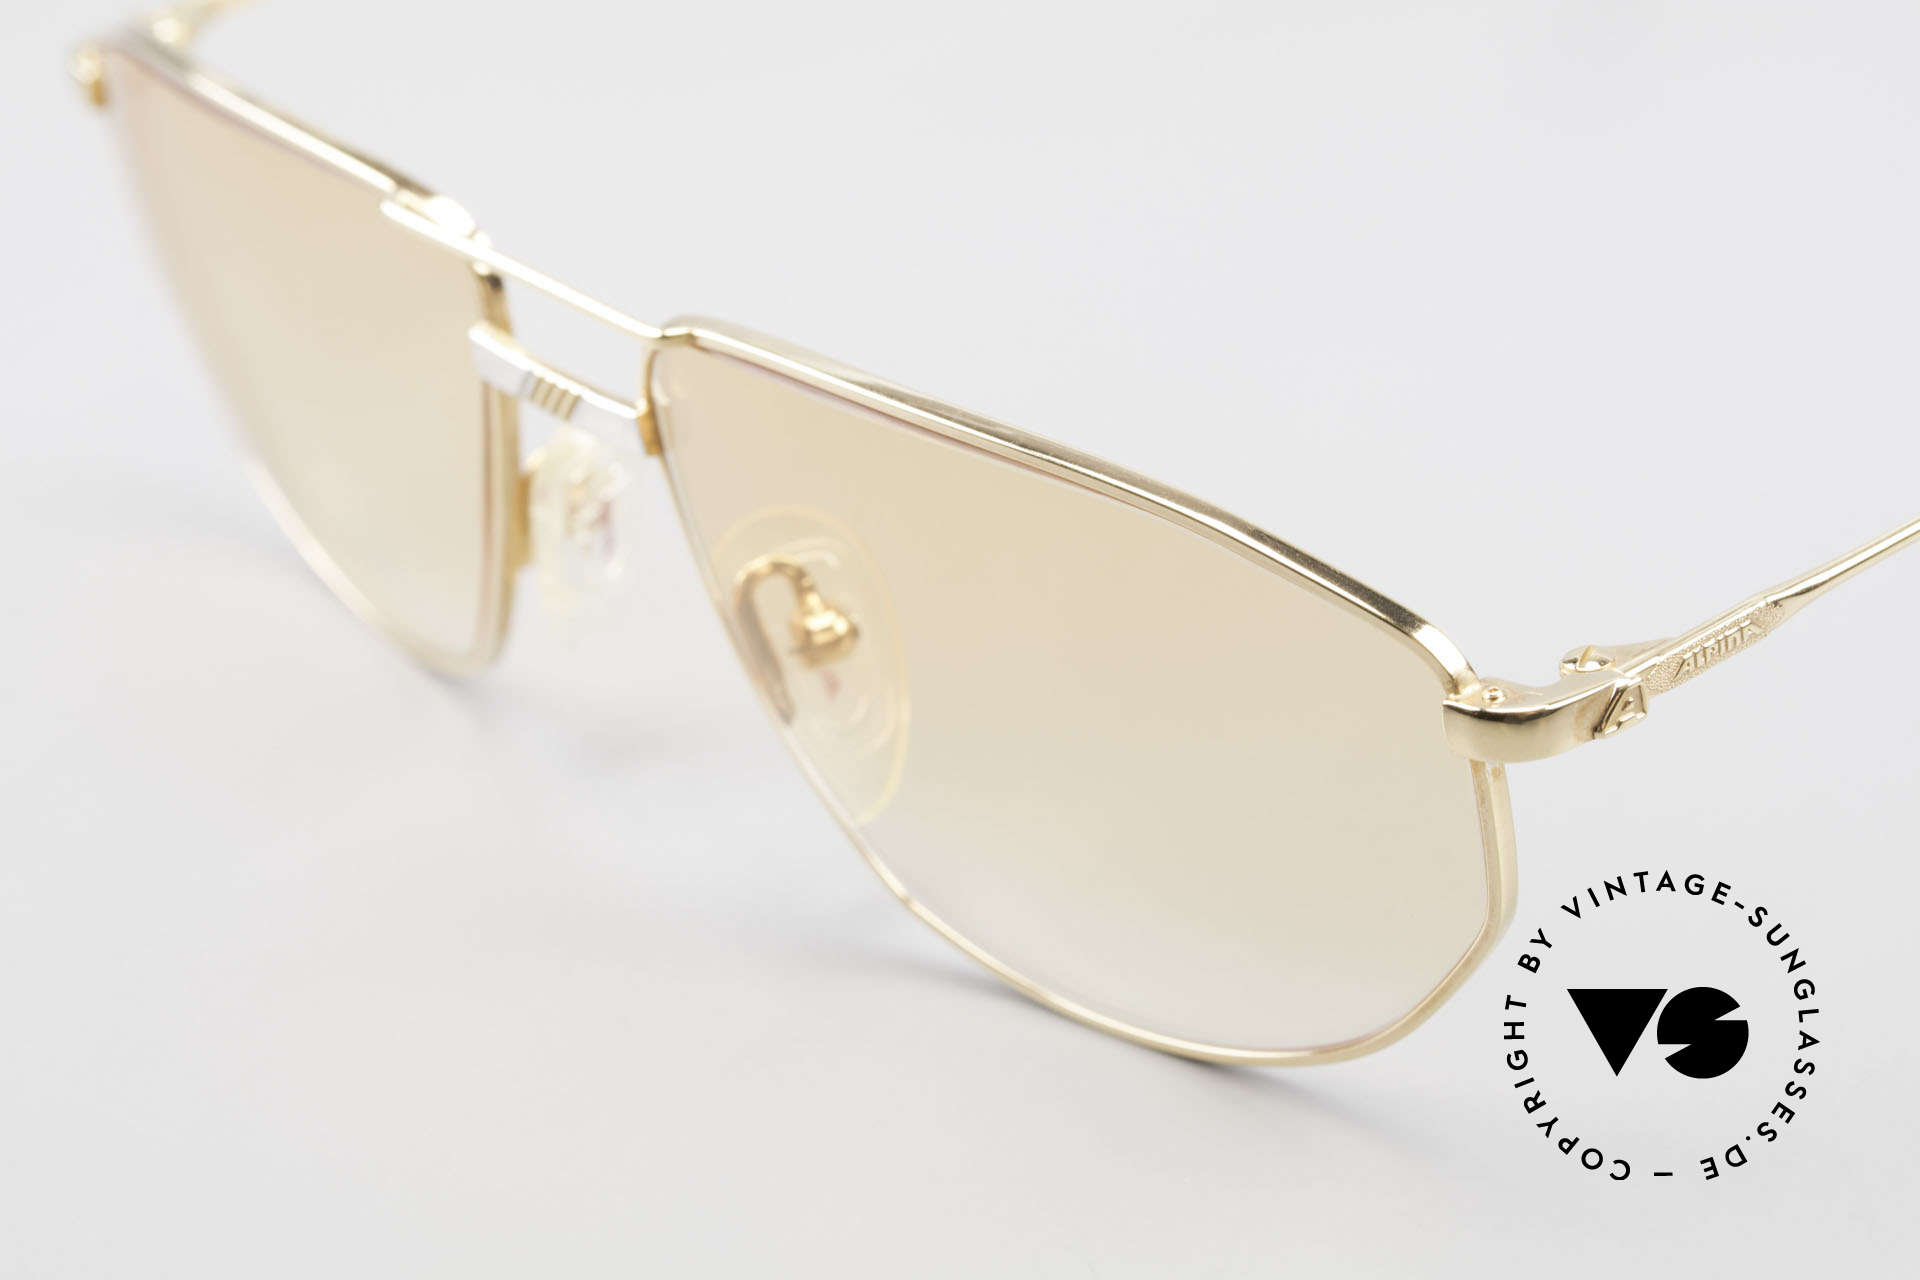 Alpina FM41 Stylish Vintage 80's Sunglasses, never worn (like all our rare vintage Alpina eyewear), Made for Men and Women